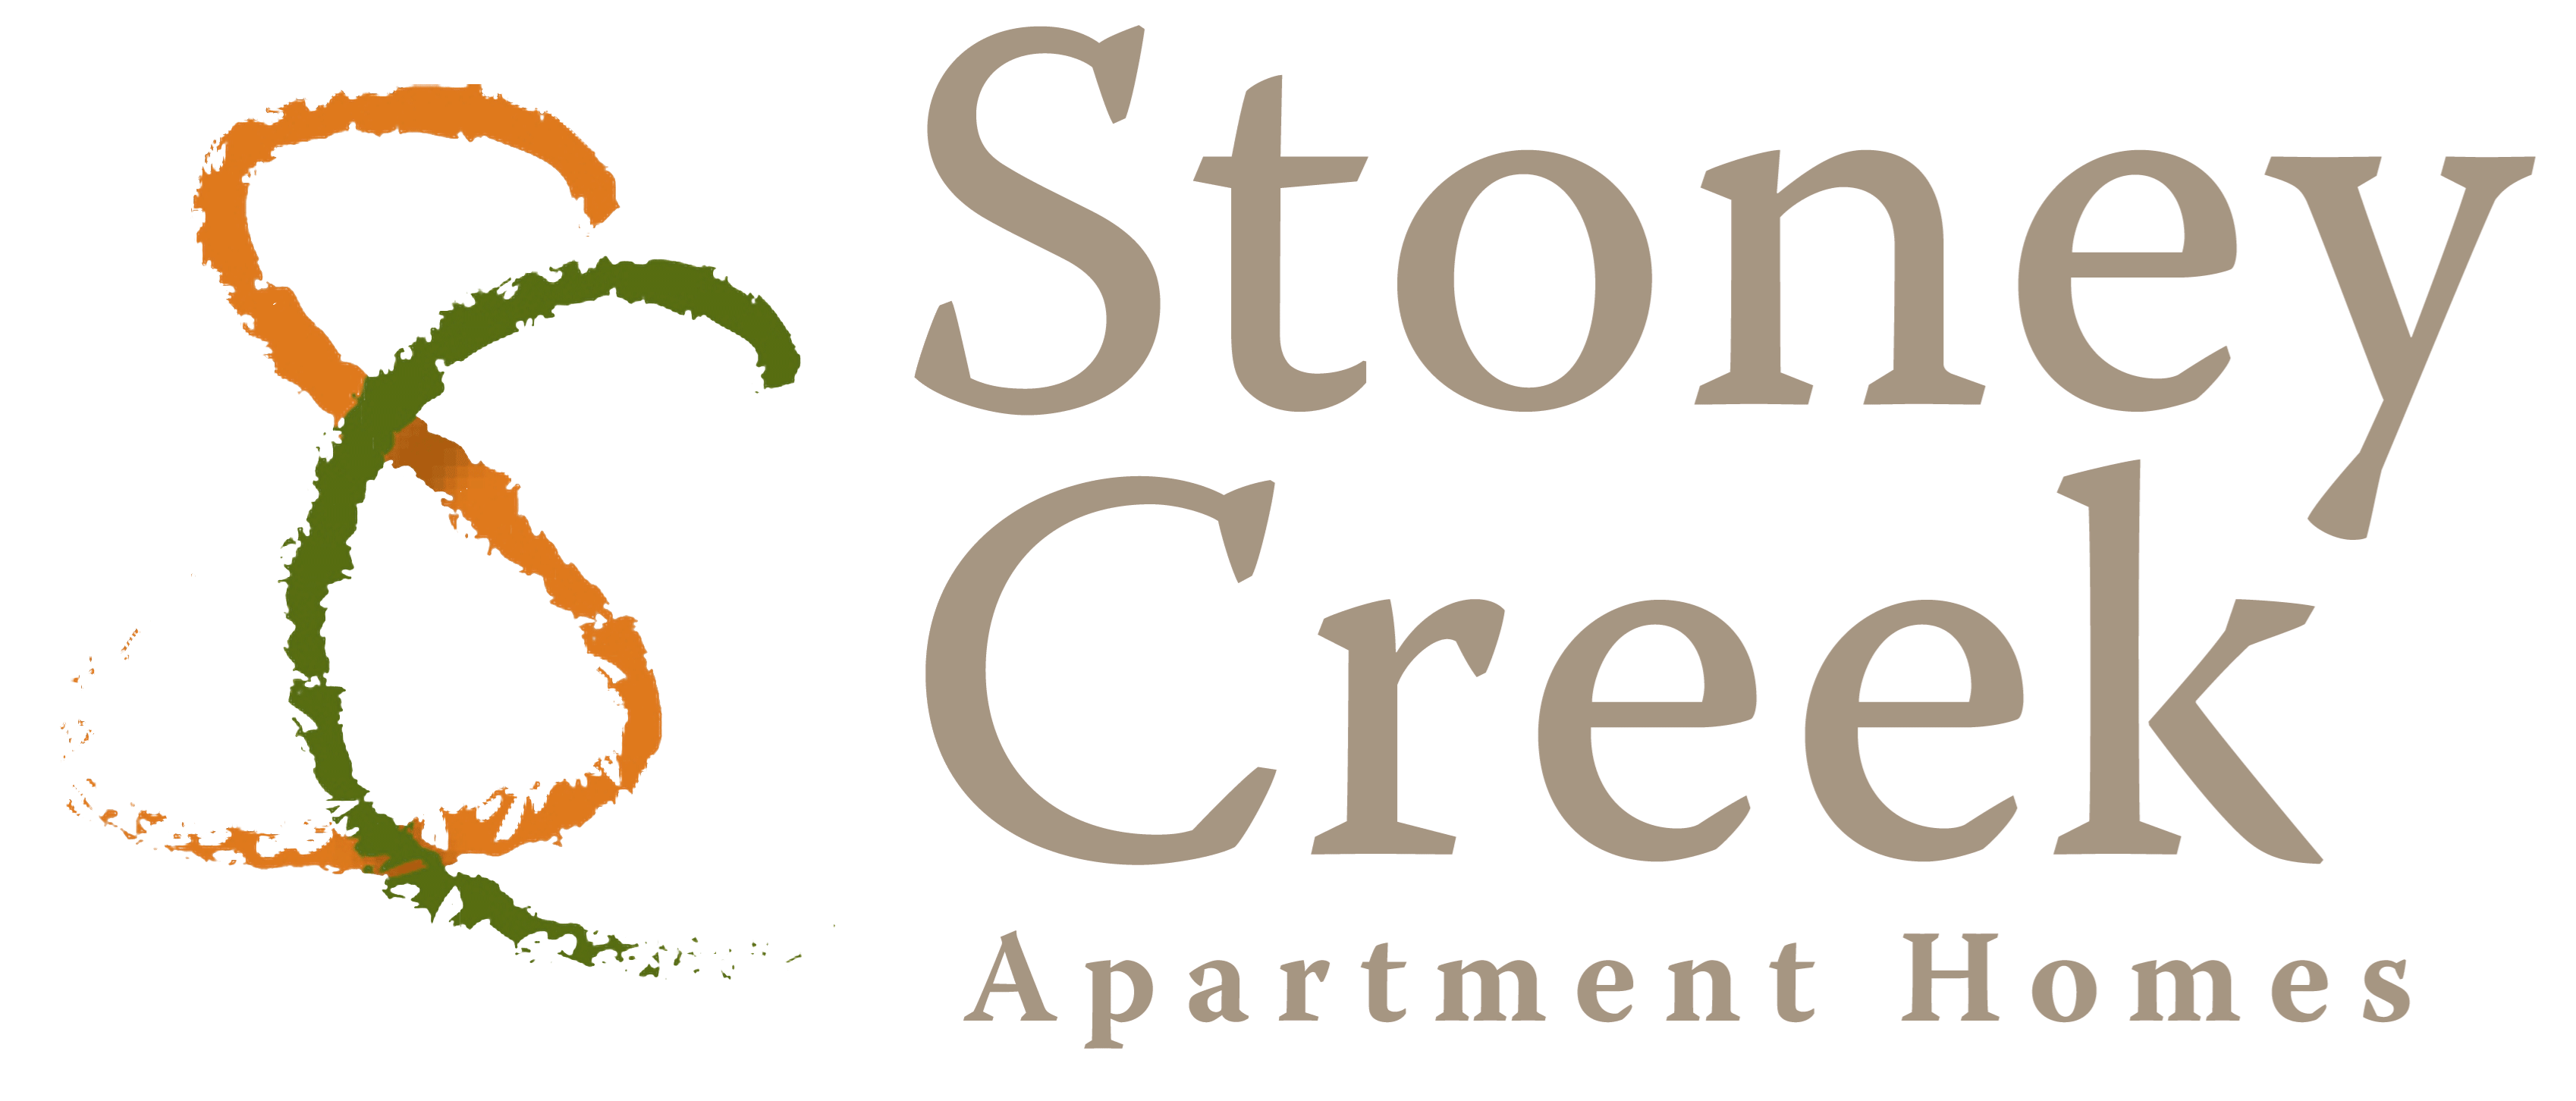 Rapid City Property Logo 20